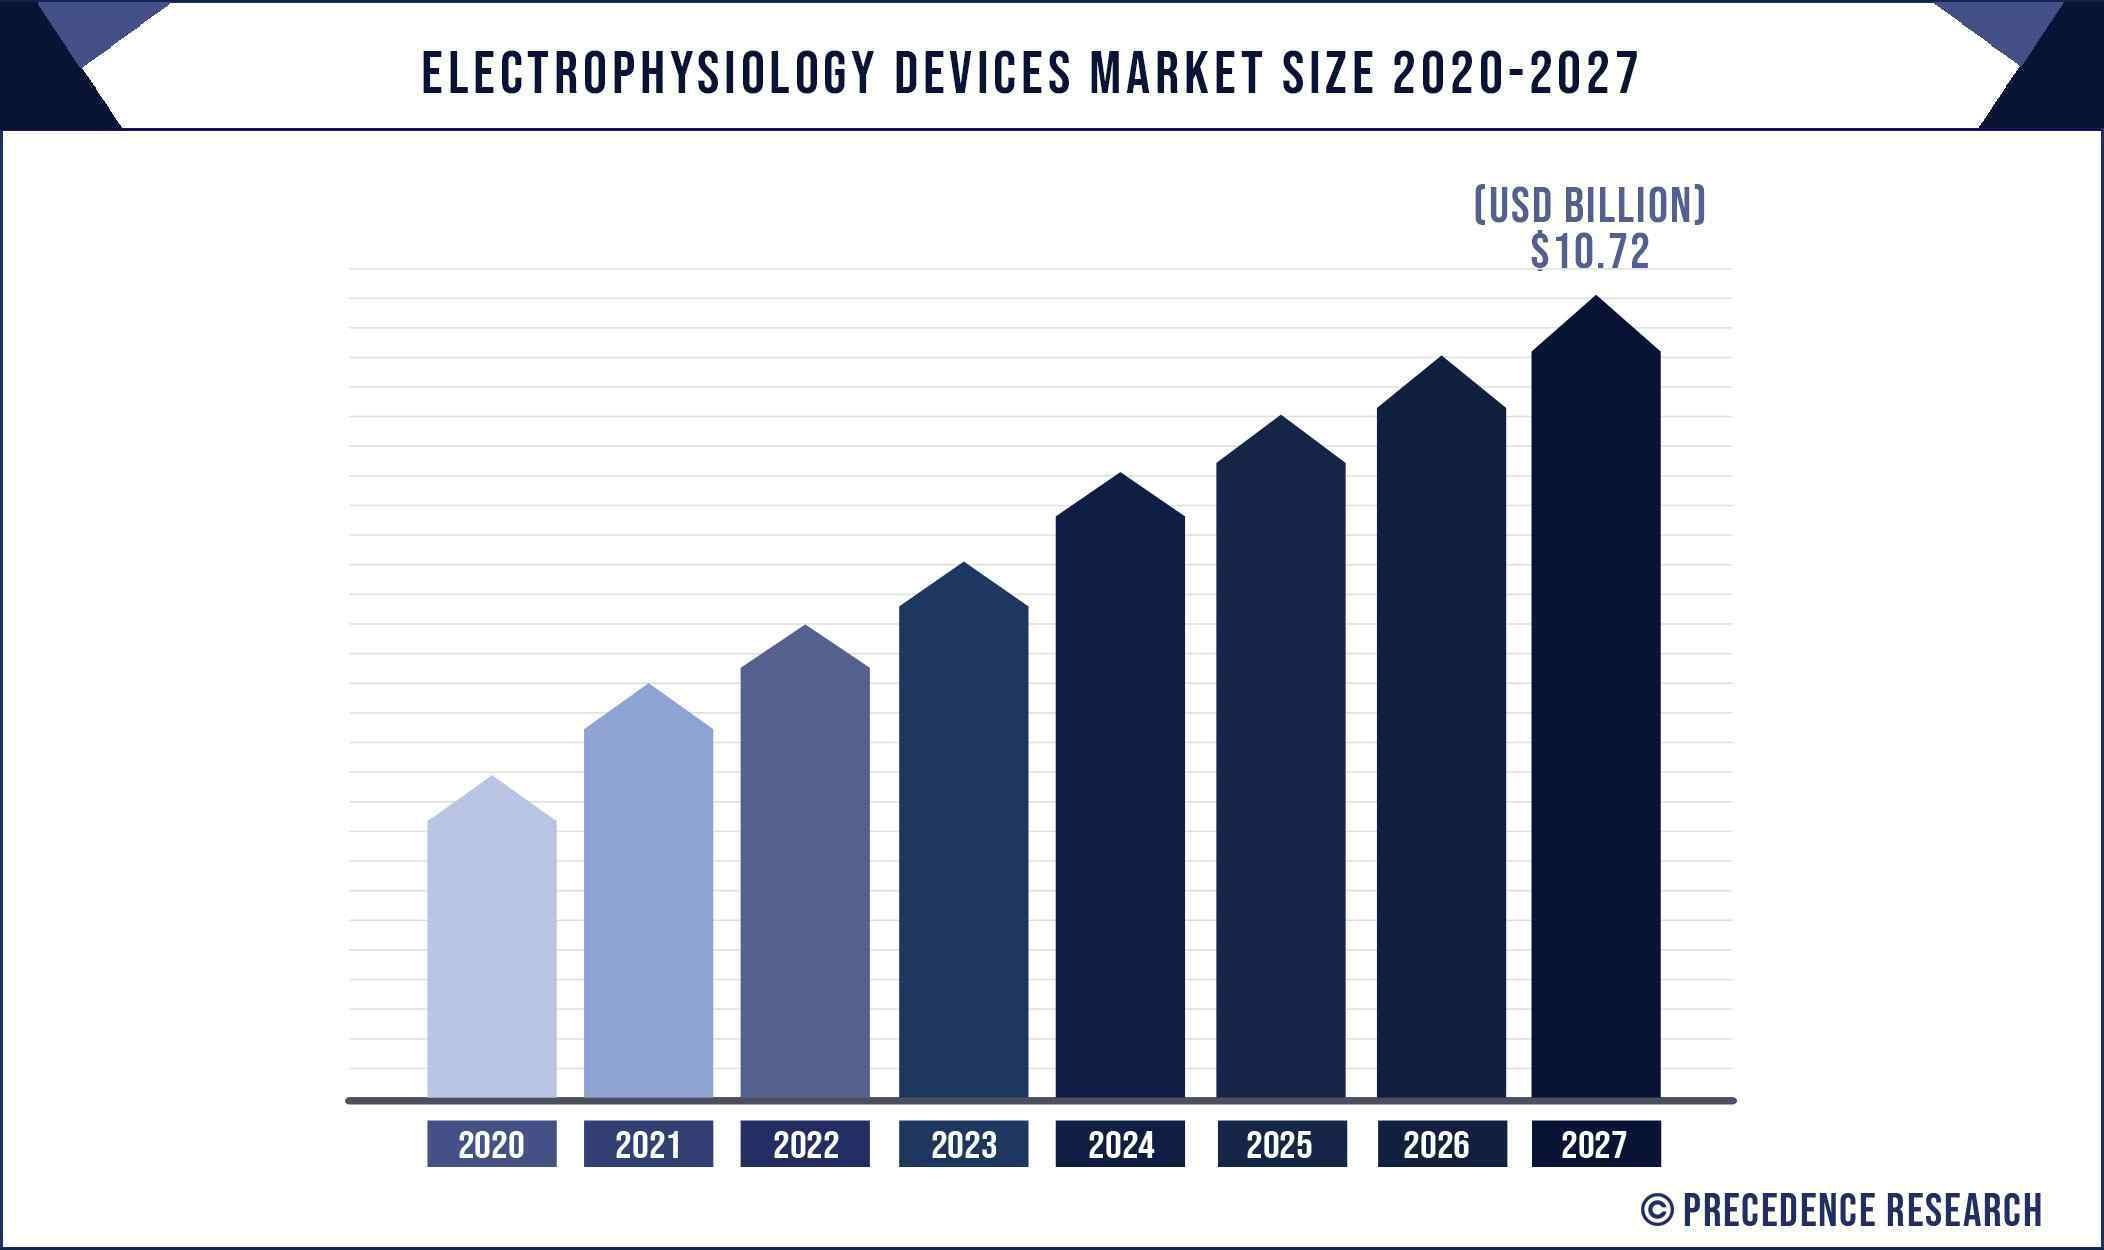 Electrophysiology Devices Market Size 2020 to 2027